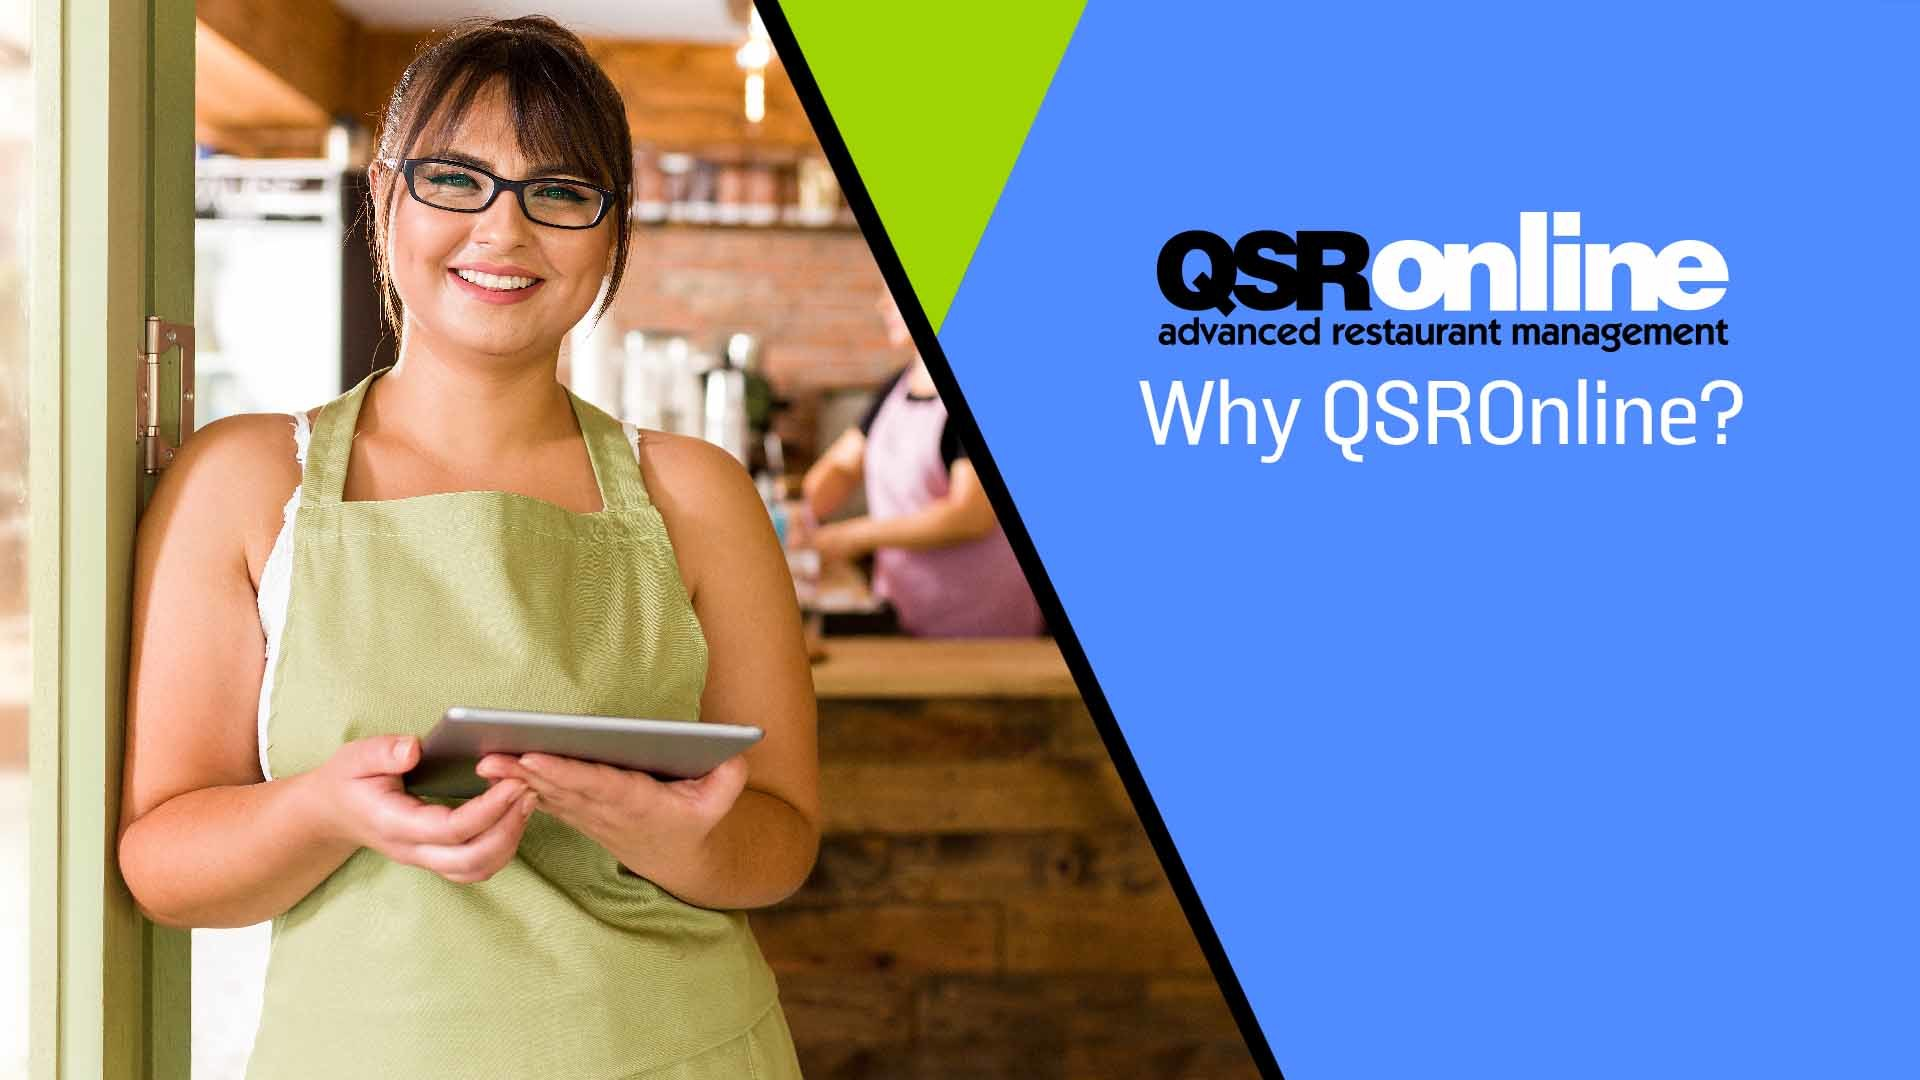 Why QSROnline?